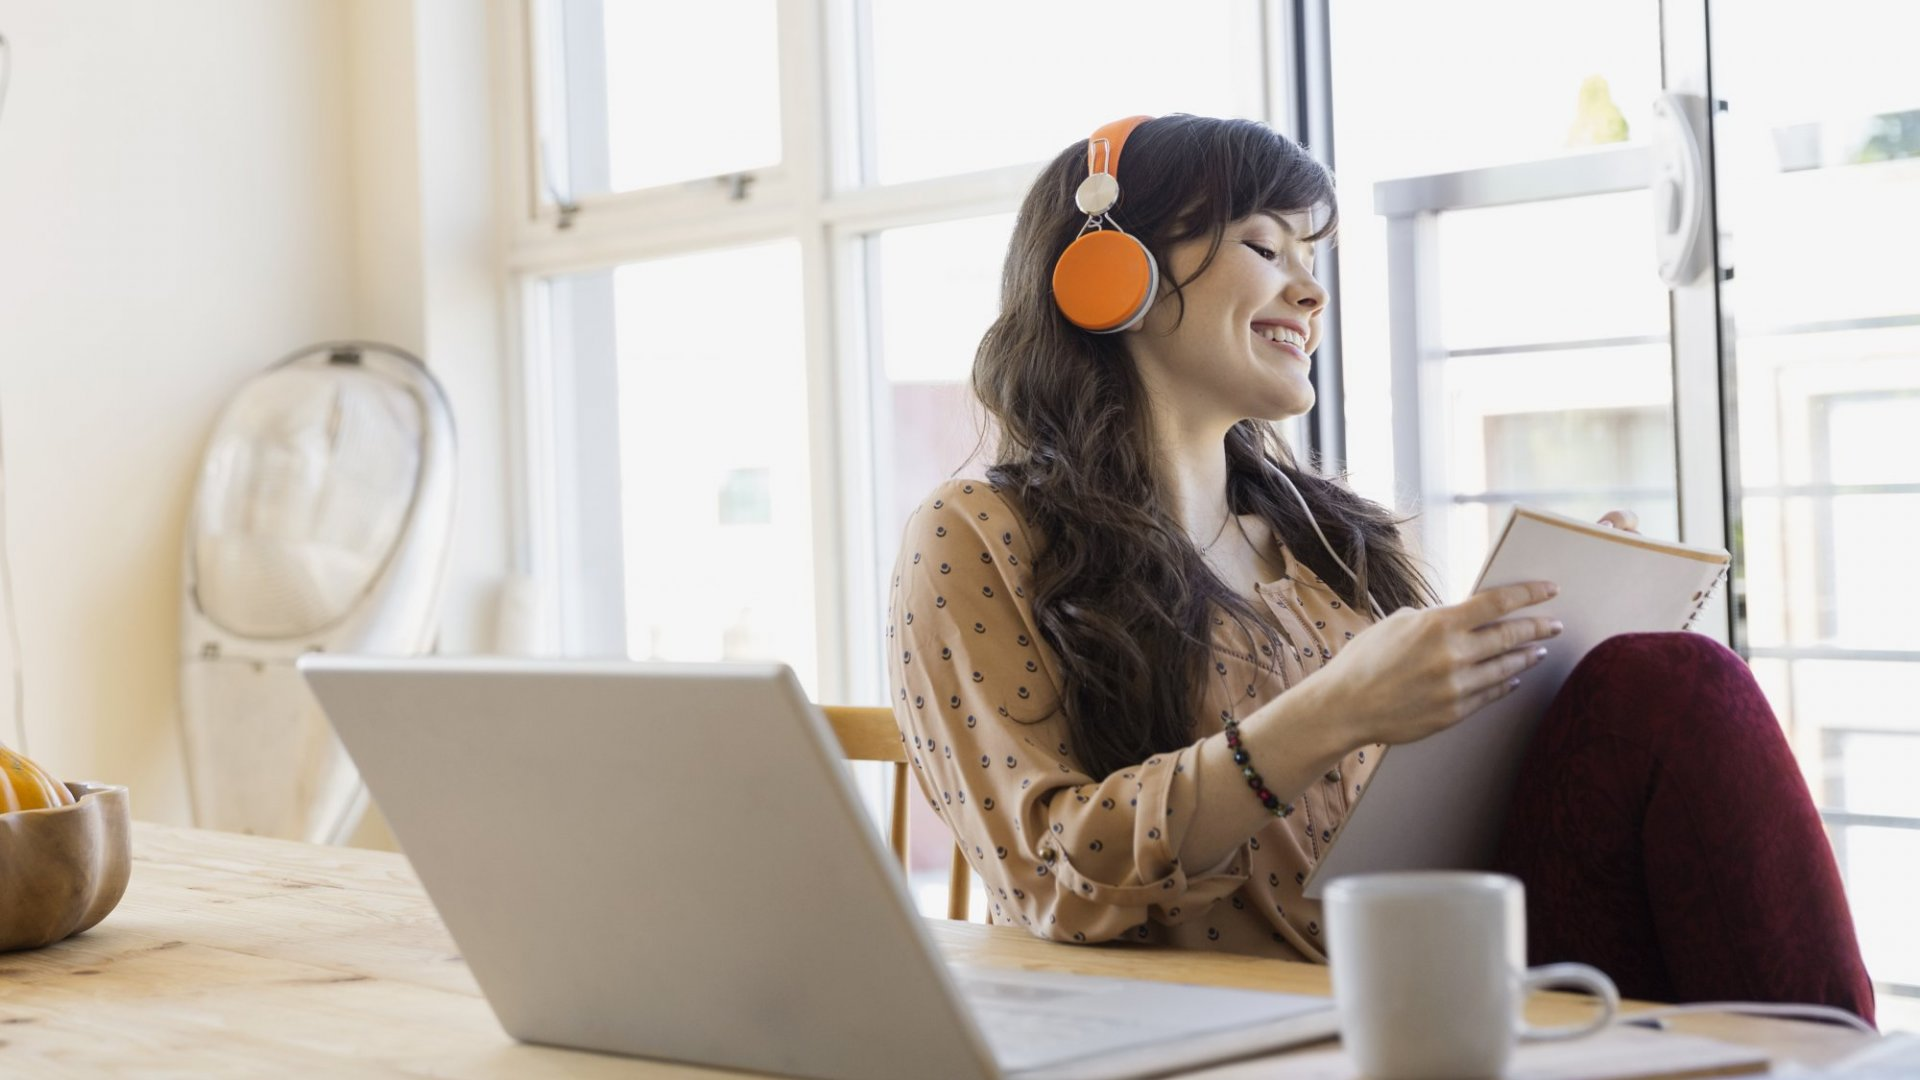 Science Finds This Type of Music Can Boost Creativity